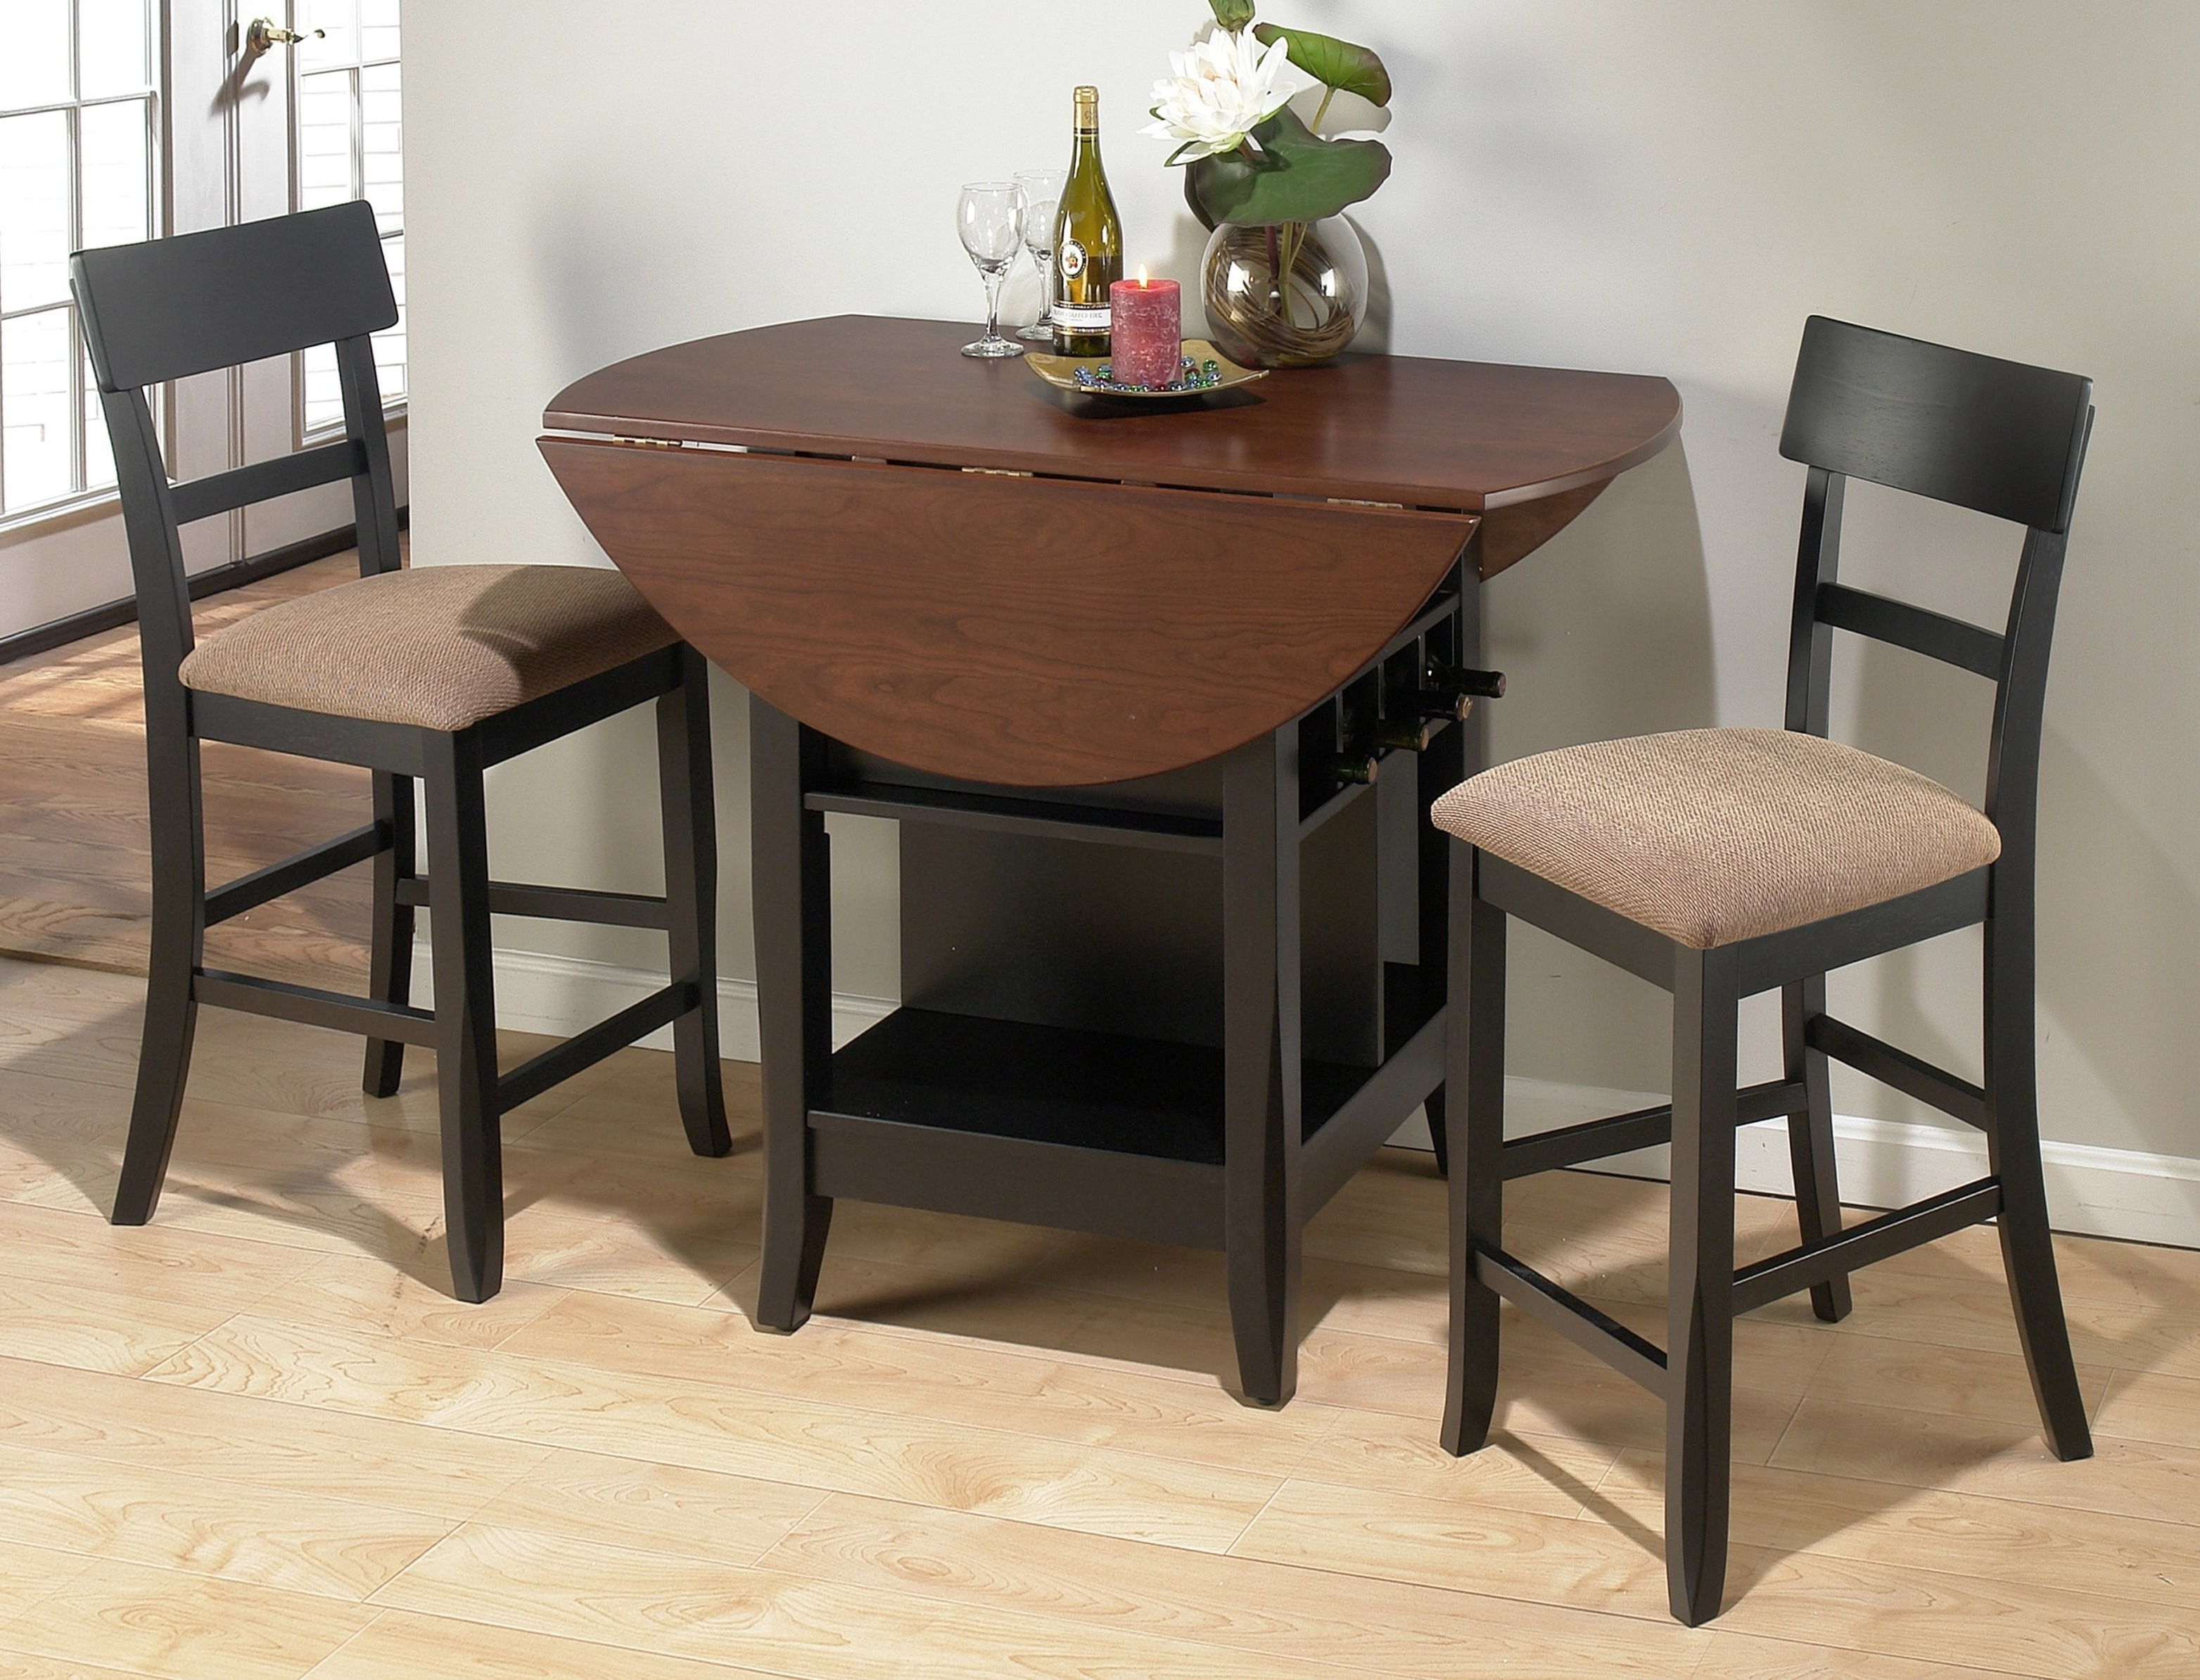 Two Person Dining Tables With Well Known 2 Person Dining Table Set Inspirational Buy Montblanc Counter Height (View 23 of 25)